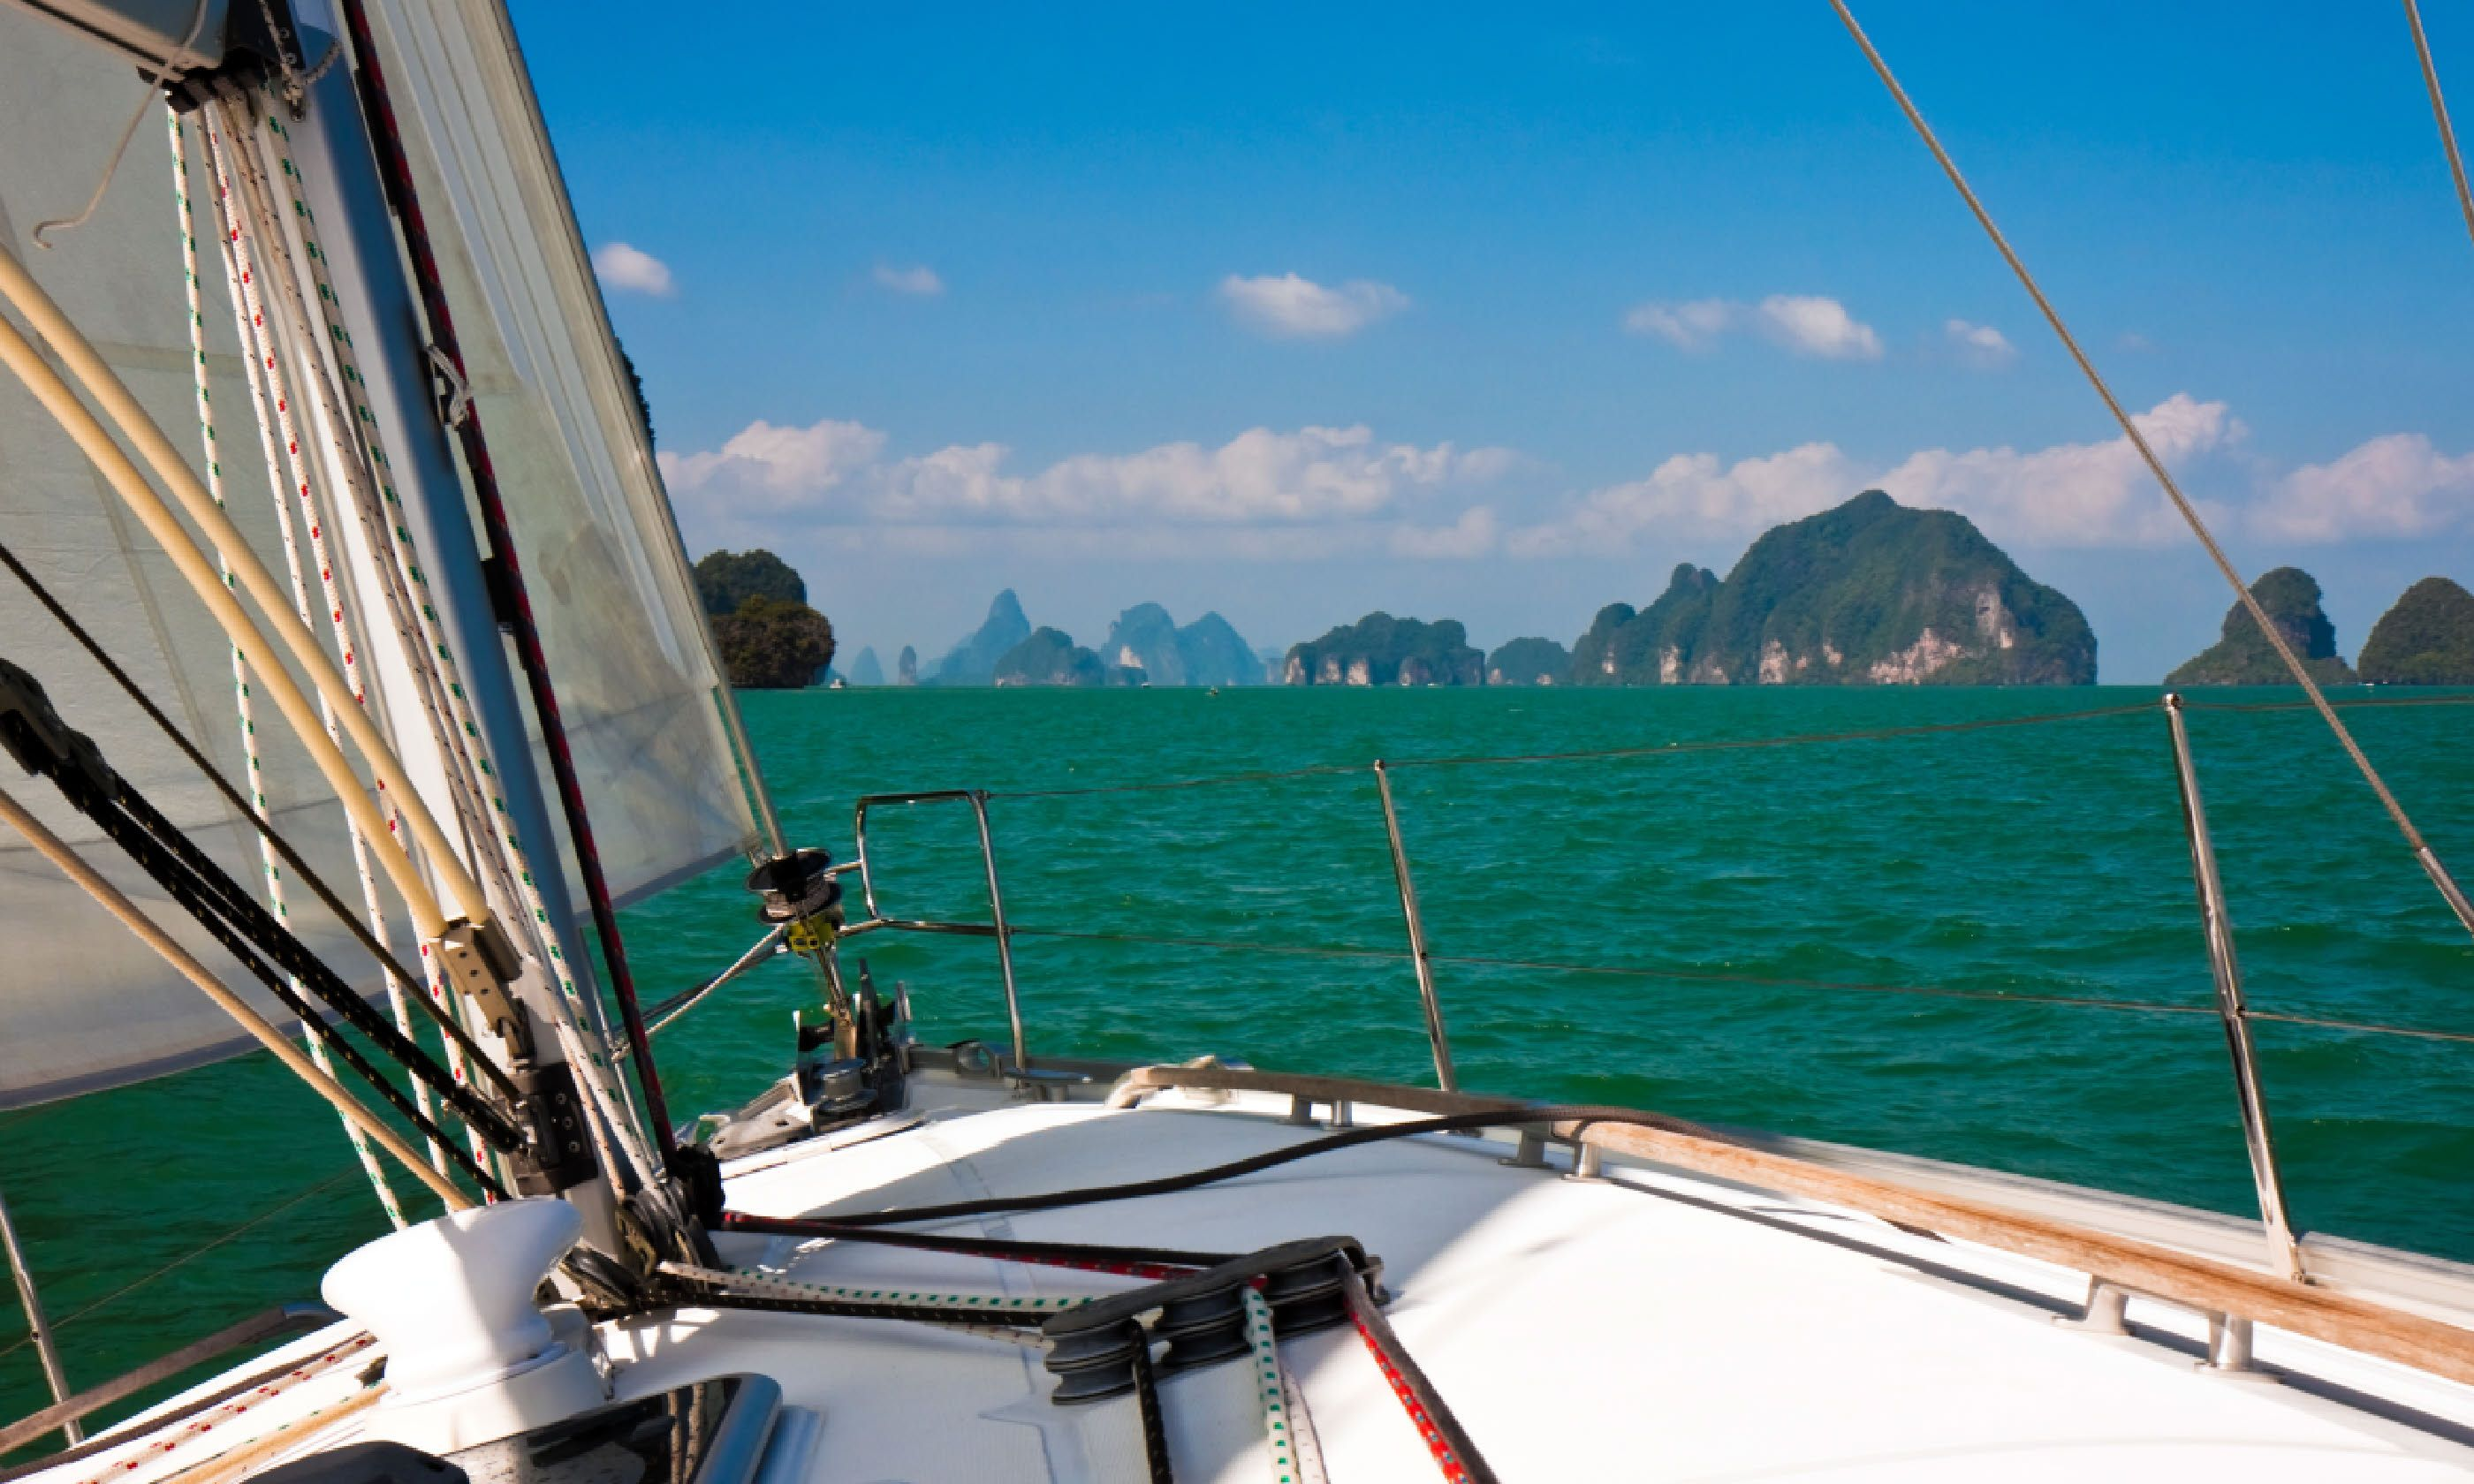 Sailboat heading towards Phang-Nga Bay in Thailand (Shutterstock)